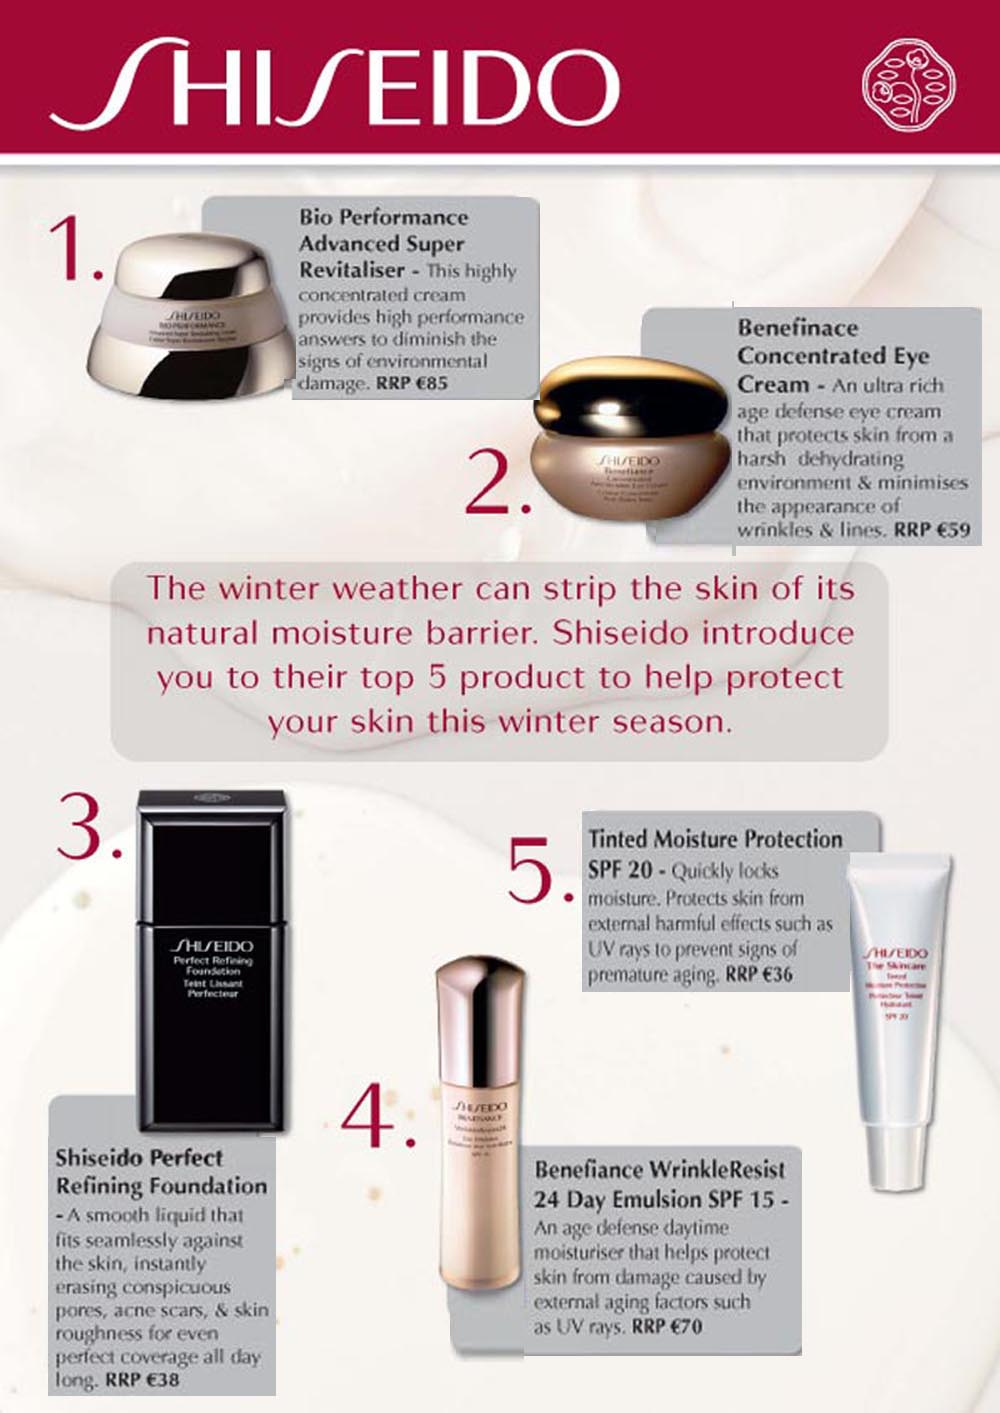 Shiseido's Top 5 products for the Winter Season